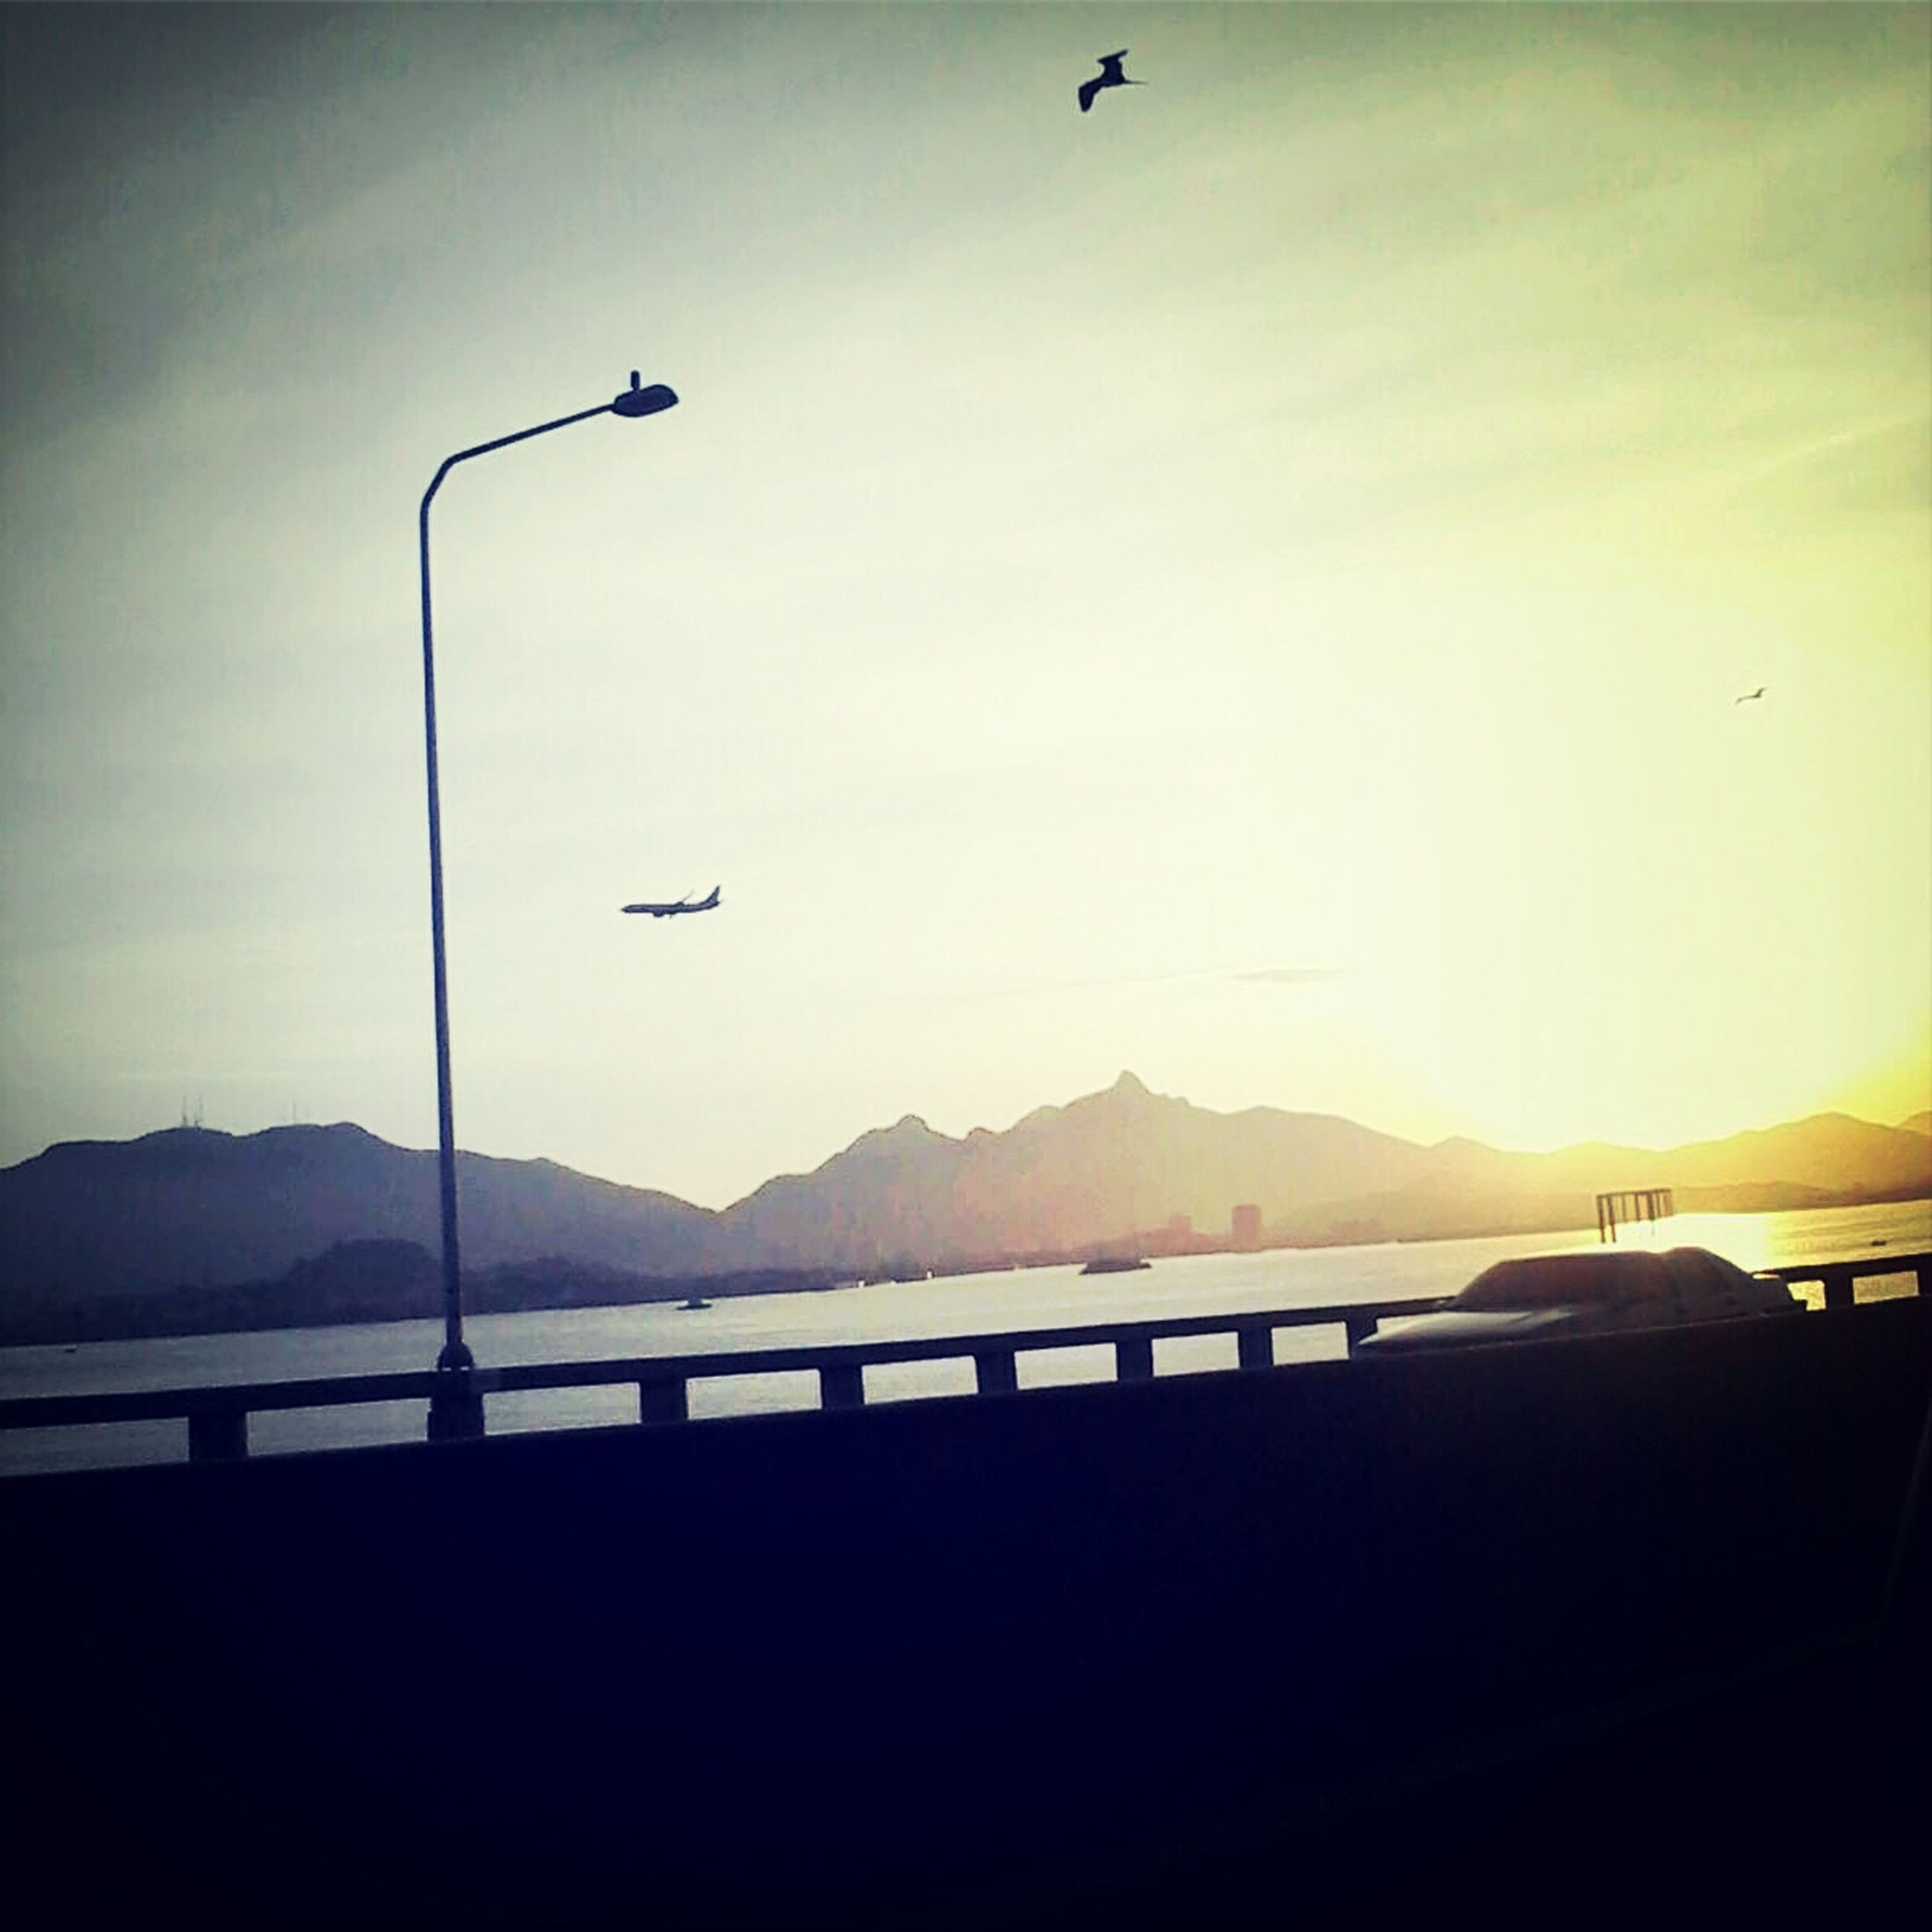 mountain, mountain range, silhouette, sky, transportation, sunset, scenics, tranquility, street light, nature, beauty in nature, landscape, tranquil scene, railing, road, flying, clear sky, outdoors, copy space, no people